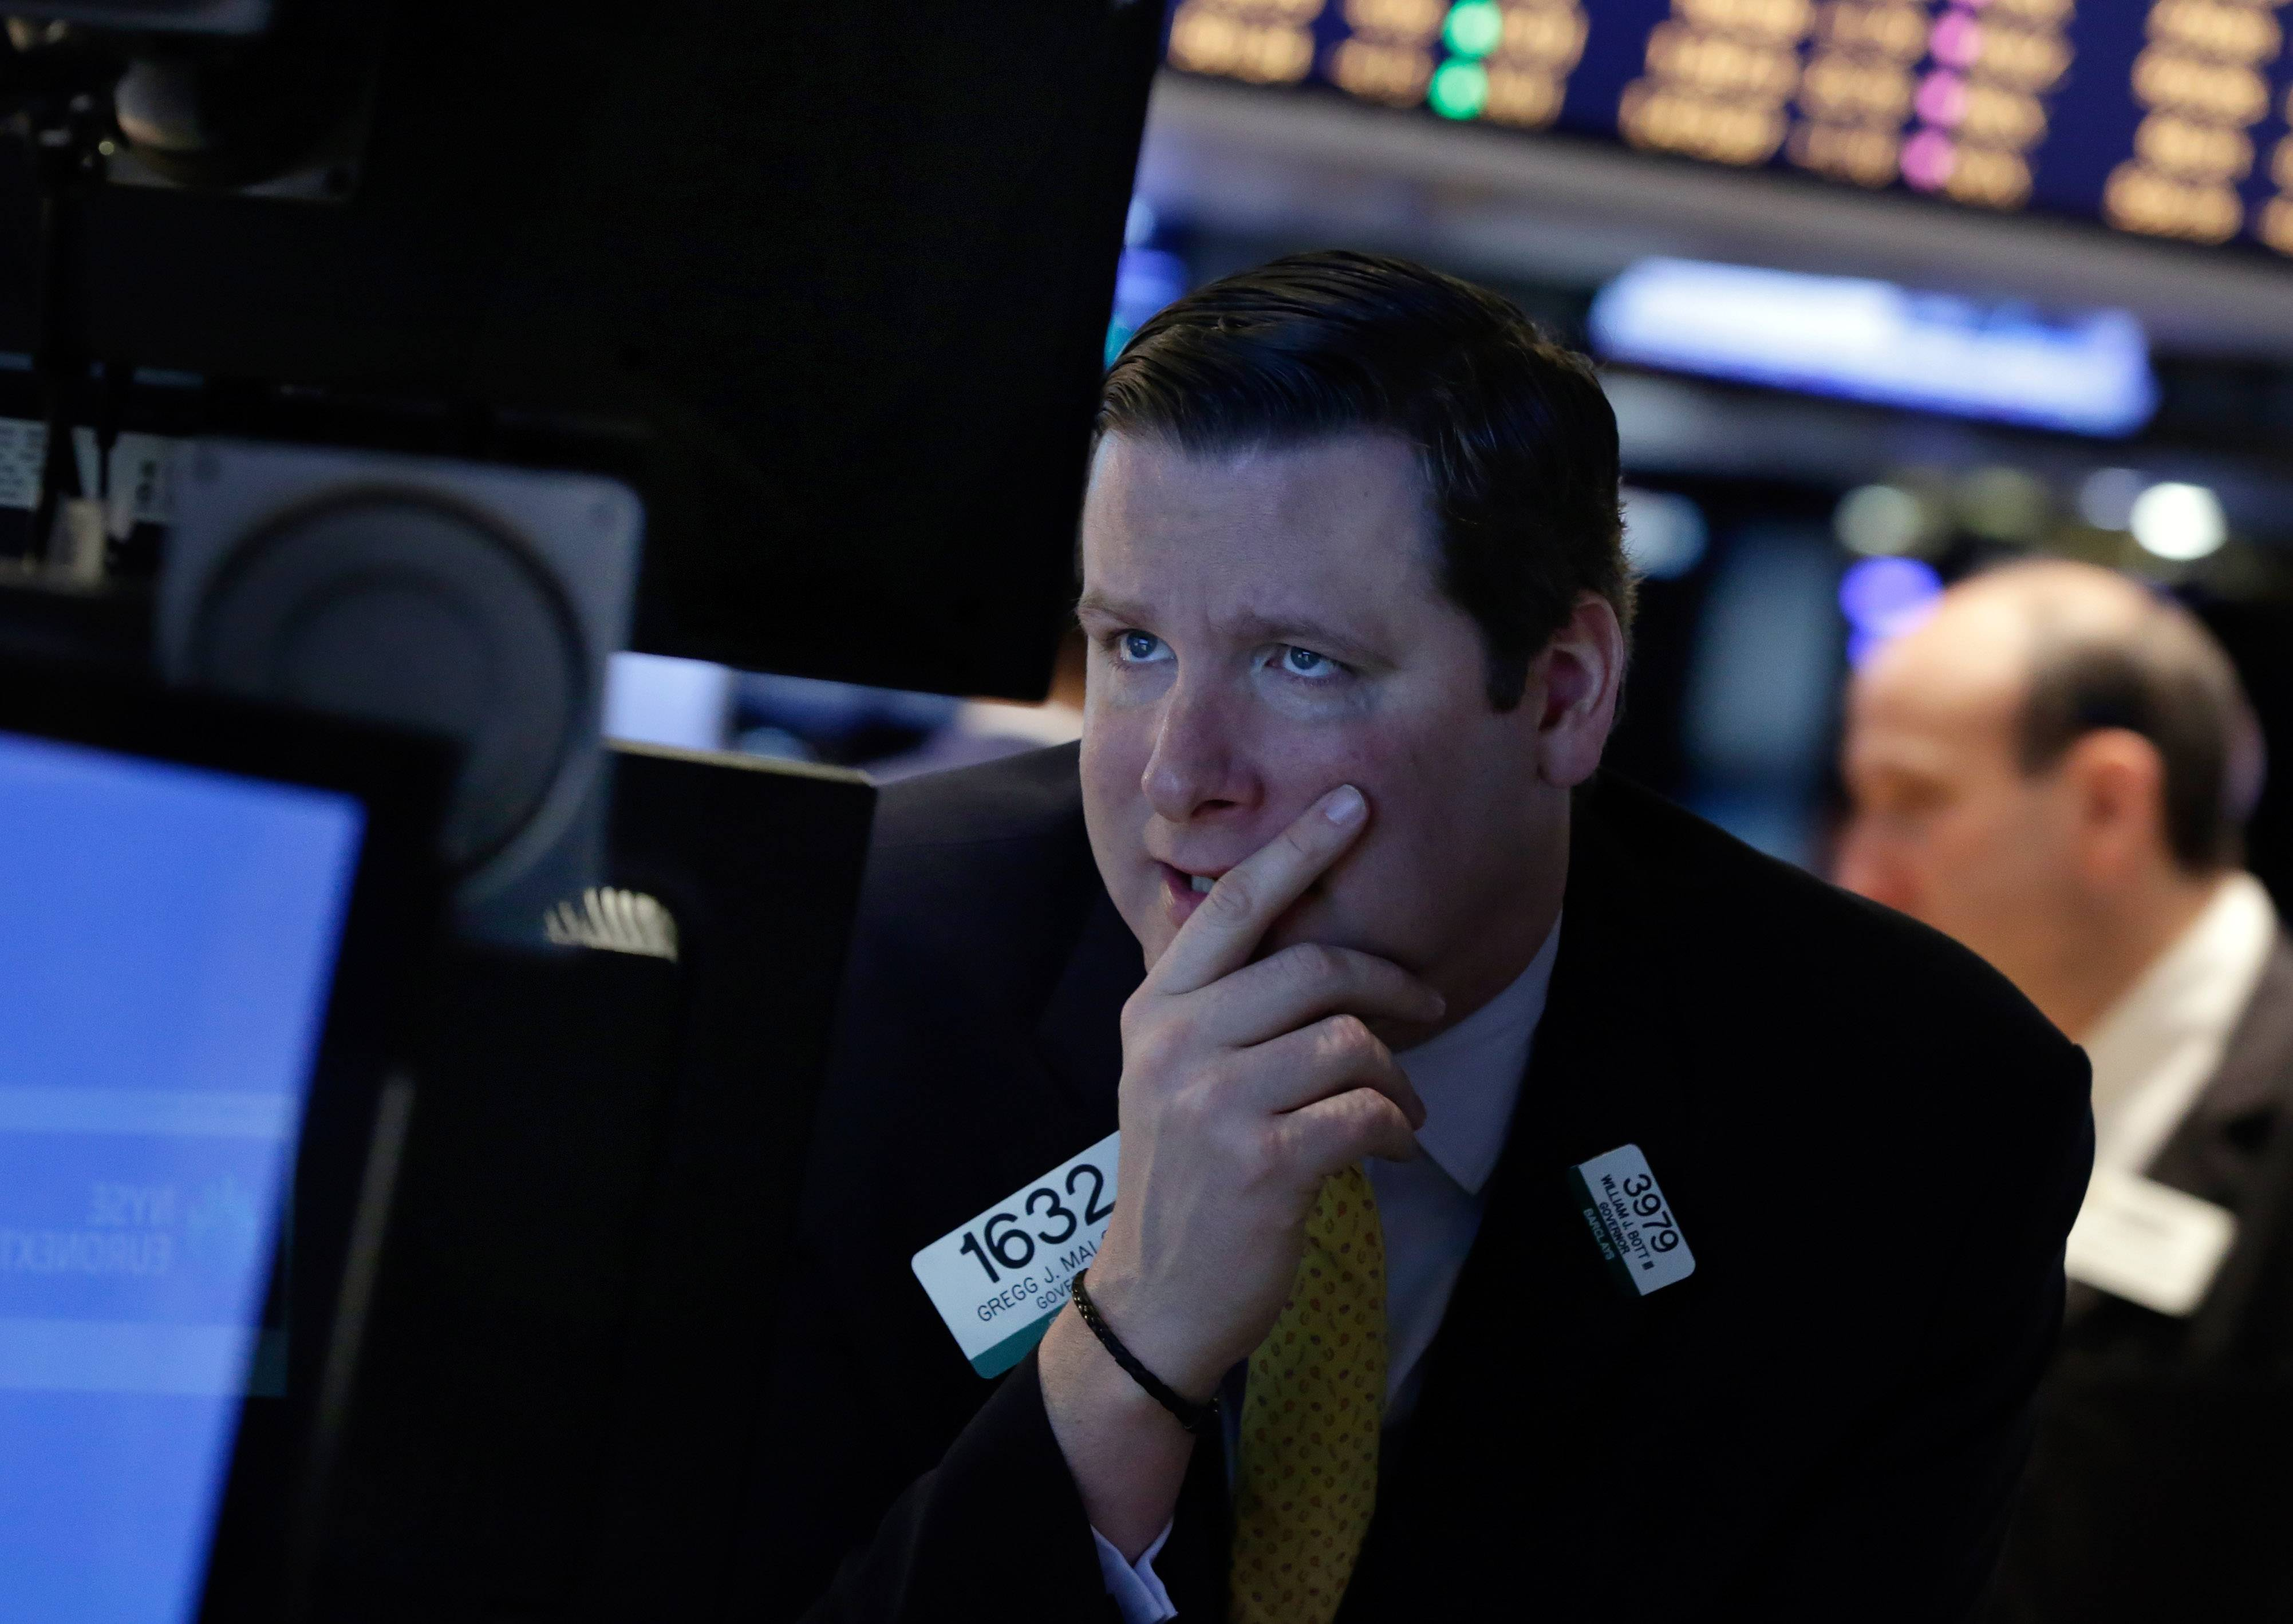 Stocks rose Thursday, sending the Standard & Poor's 500 Index to an all-time high, as data showed jobless claims fell to the lowest level in three months and investors watched developments in Ukraine.